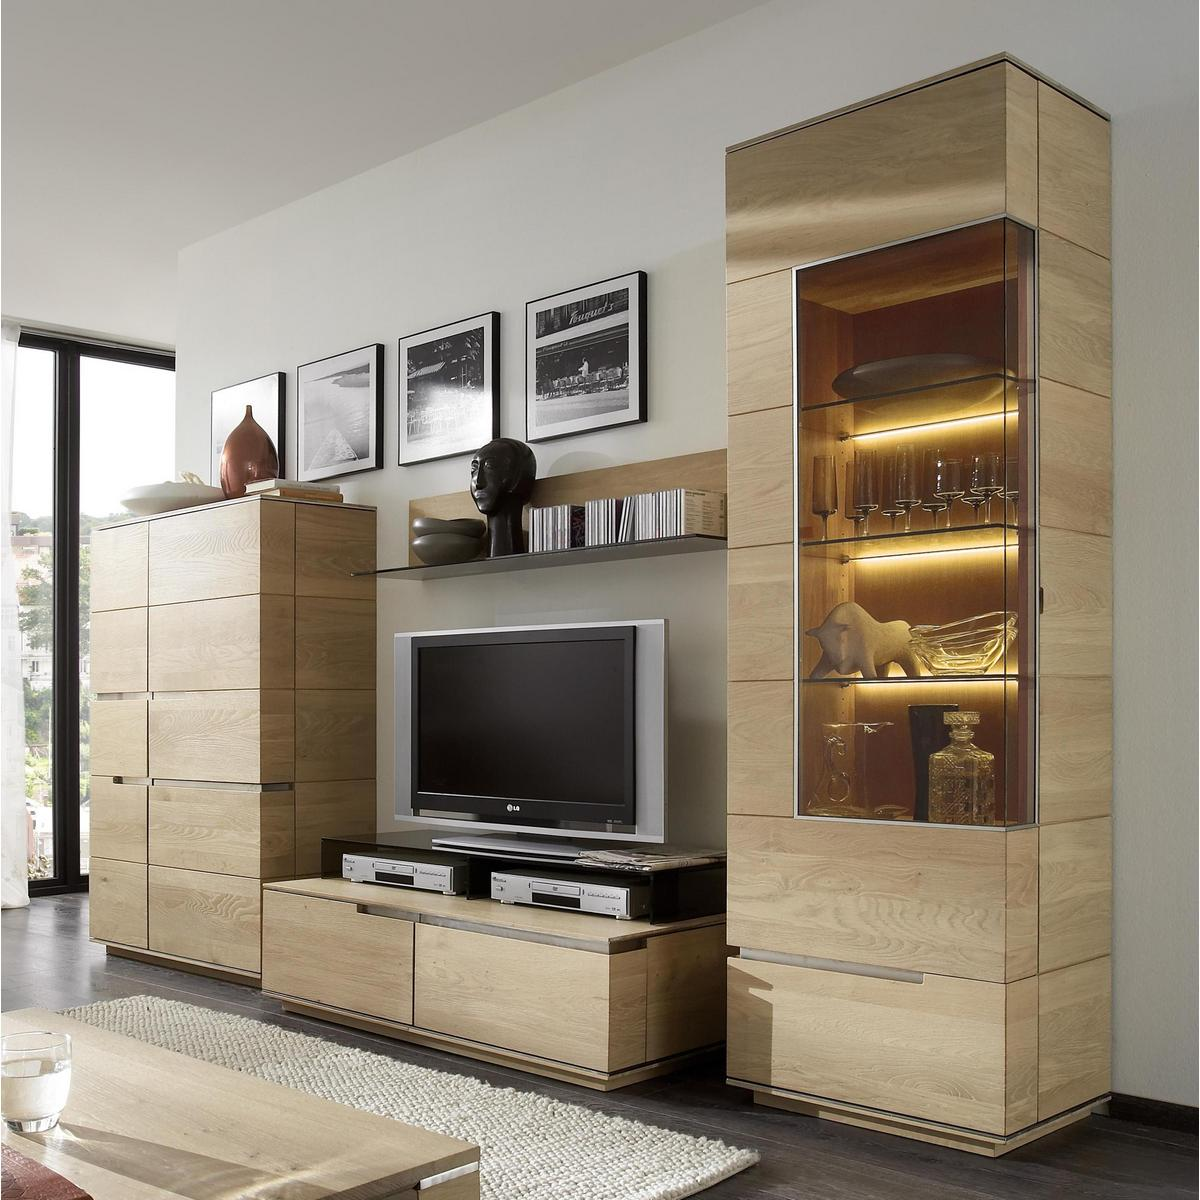 wohnzimmerm bel wohnwand wildeiche massiv geb rstet bianco ge lt acerro. Black Bedroom Furniture Sets. Home Design Ideas